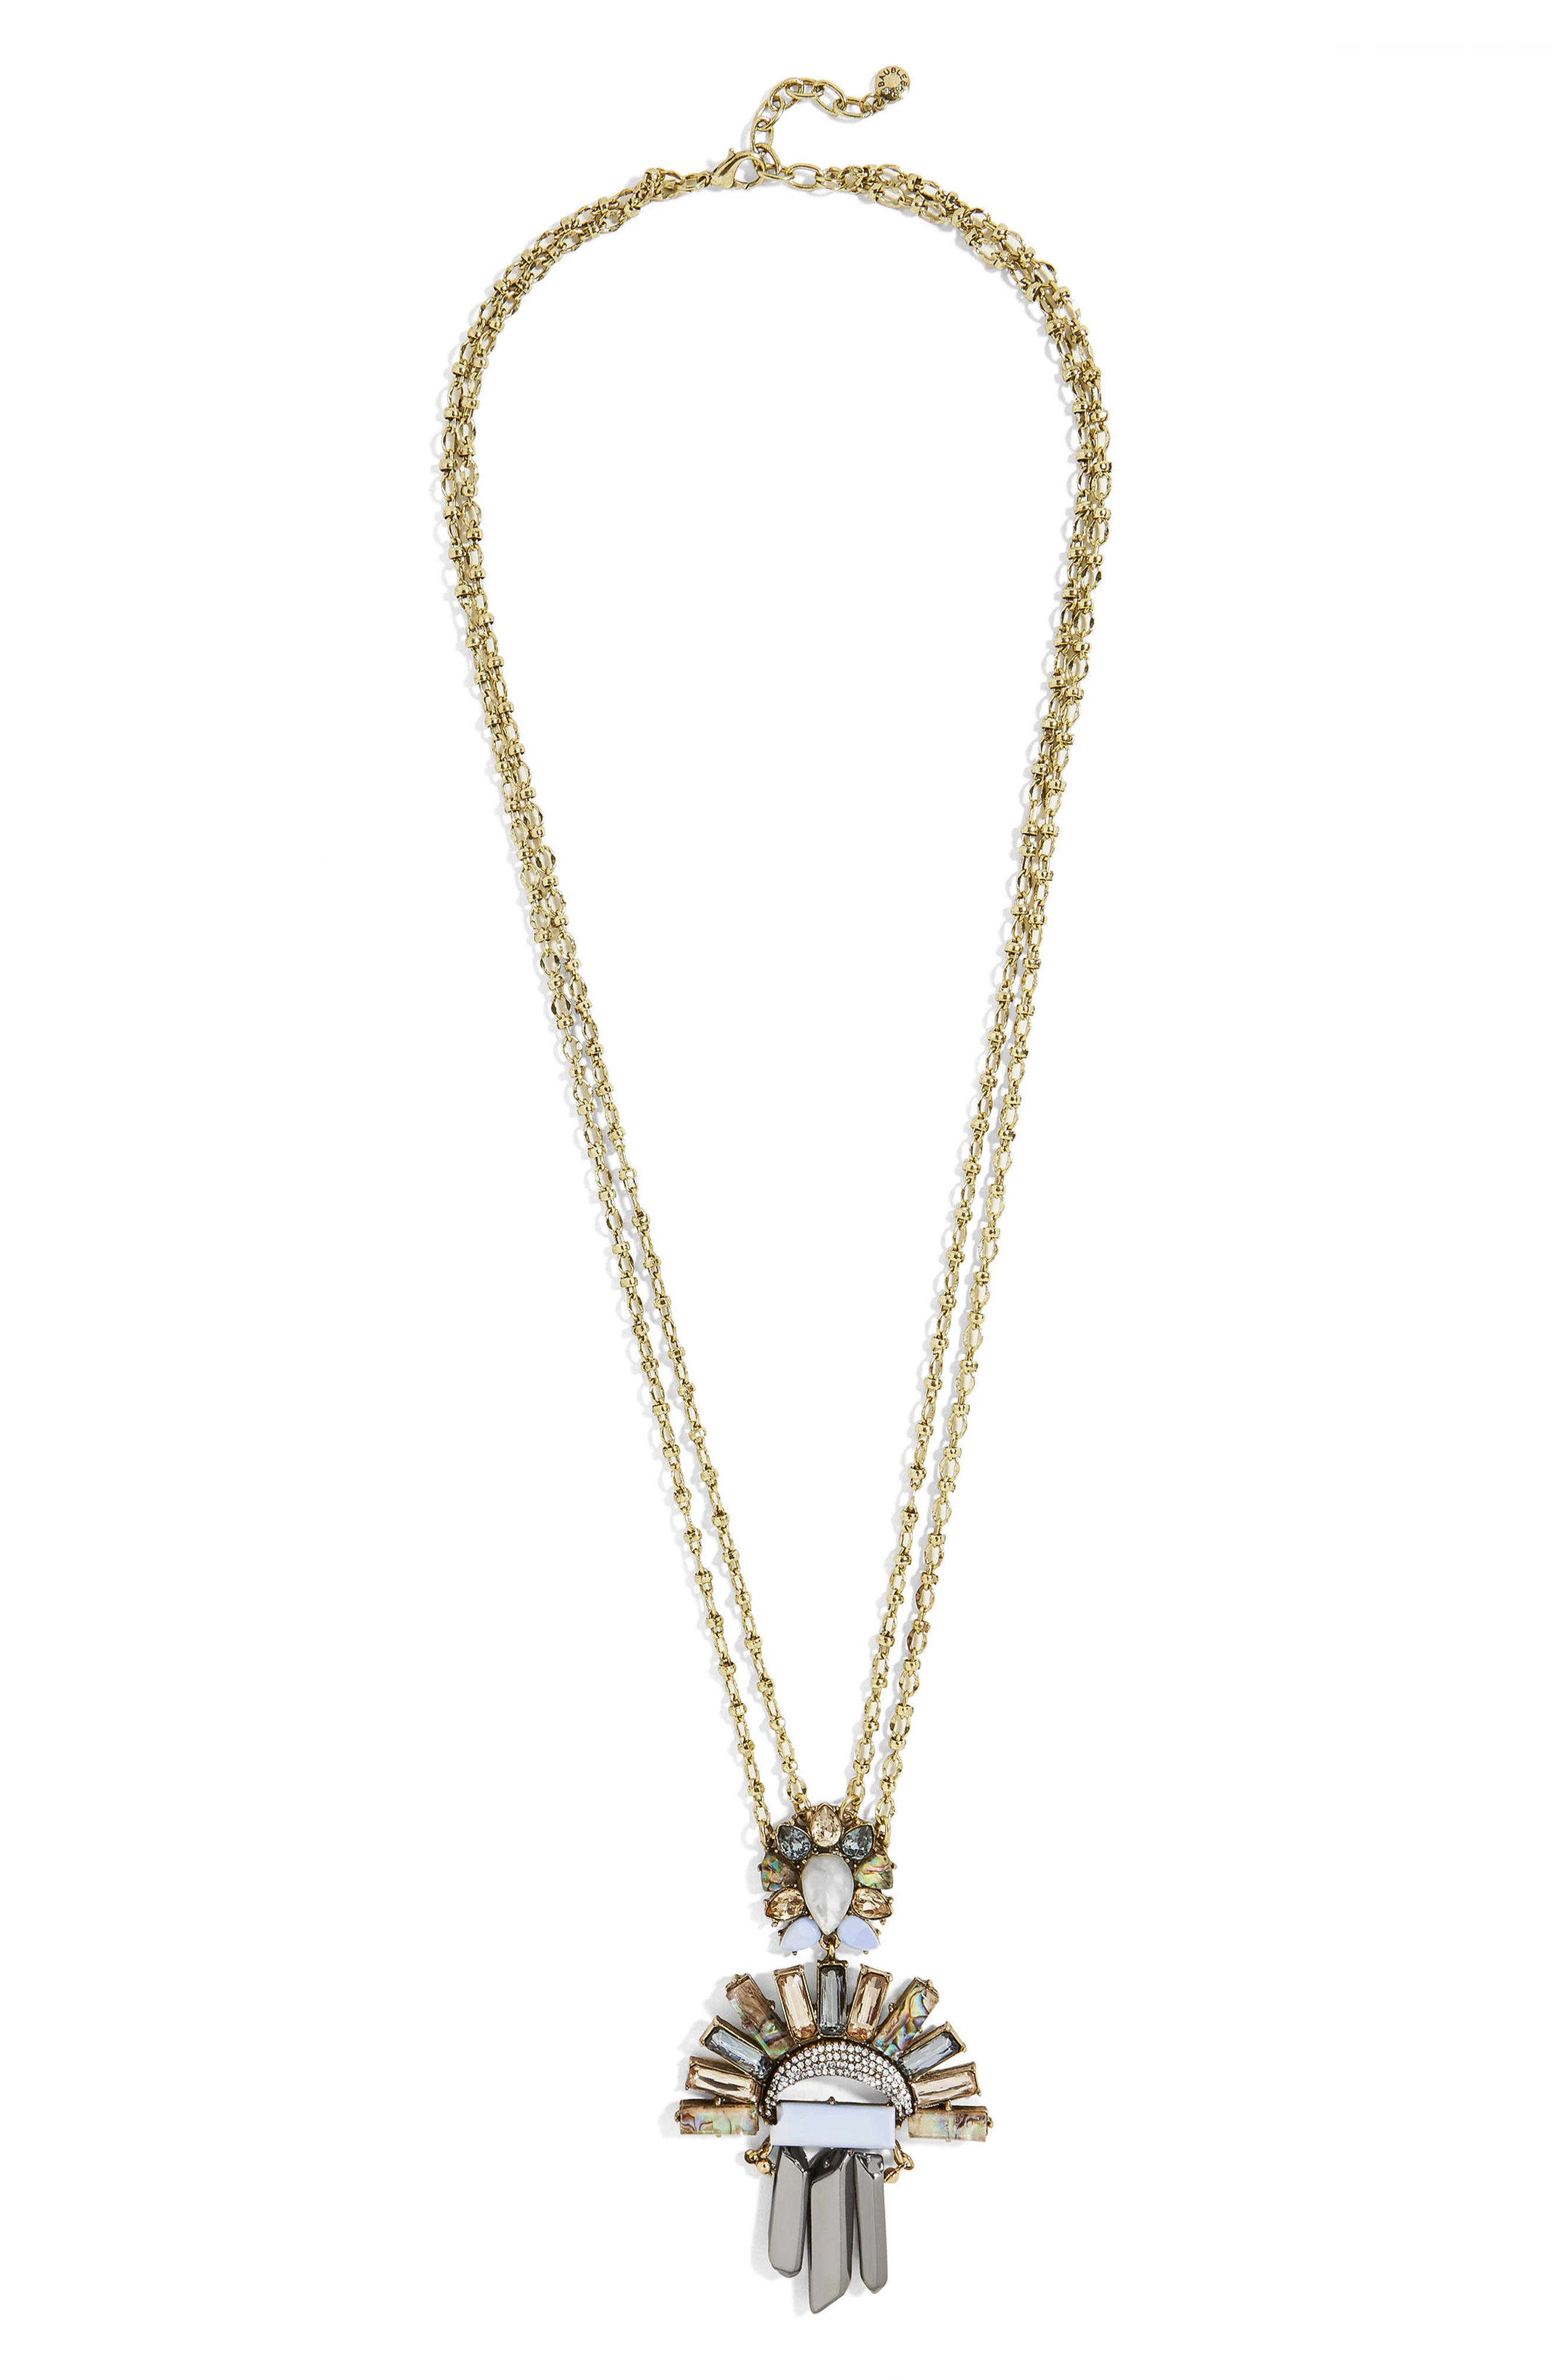 Torrence Crystal Necklace,                             Main thumbnail 1, color,                             400